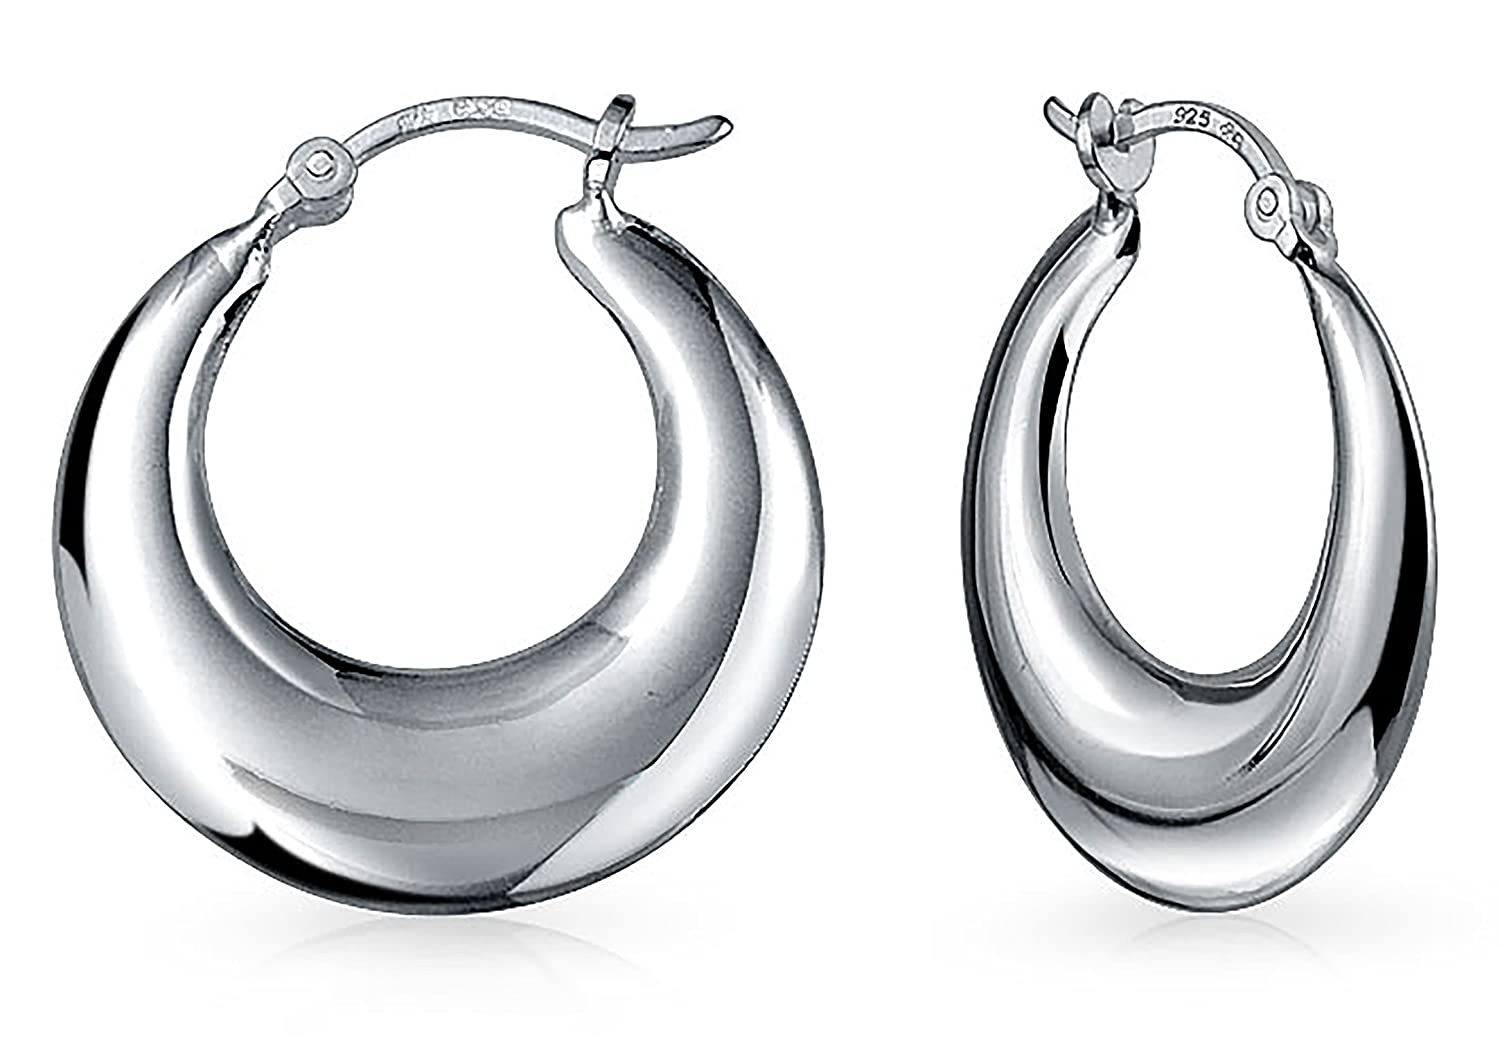 b6a06f61b36c2 Round Polished Finish Crescent Tapered Tube Hoop Earrings For Women 925  Sterling Silver Hinged Notched Post 1 Inch Dia